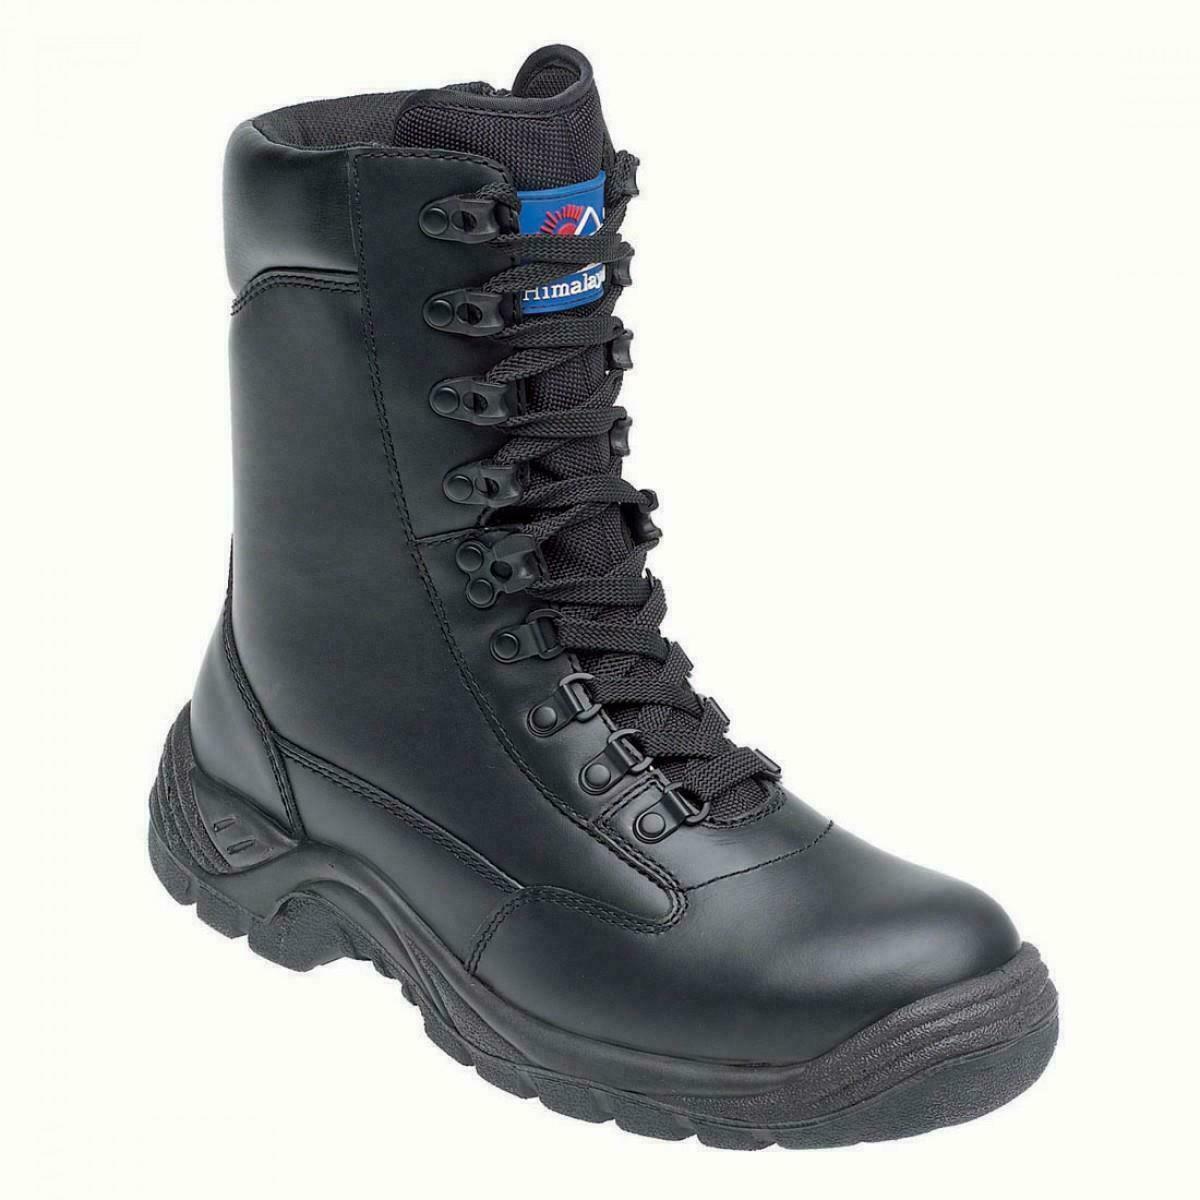 HIMALAYAN 5060 S3 Black Leather High Leg Steel Toe/Midsole Side-Zip Safety Boot